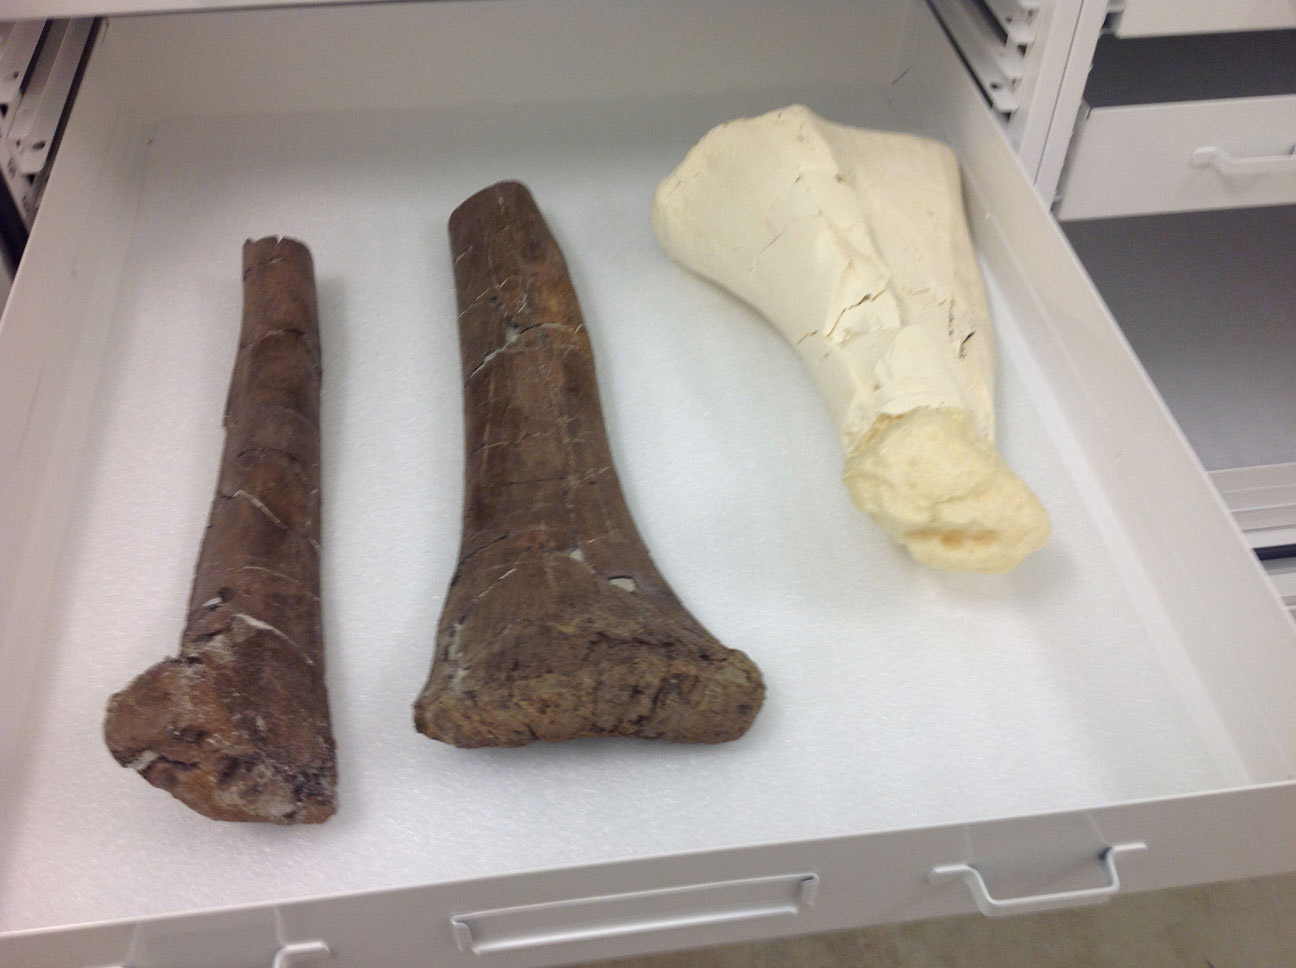 In this case, an Edmontosaurus tibia (back leg bone) that is missing the lower part will be completed by adding a carefully carved and colored foam piece.